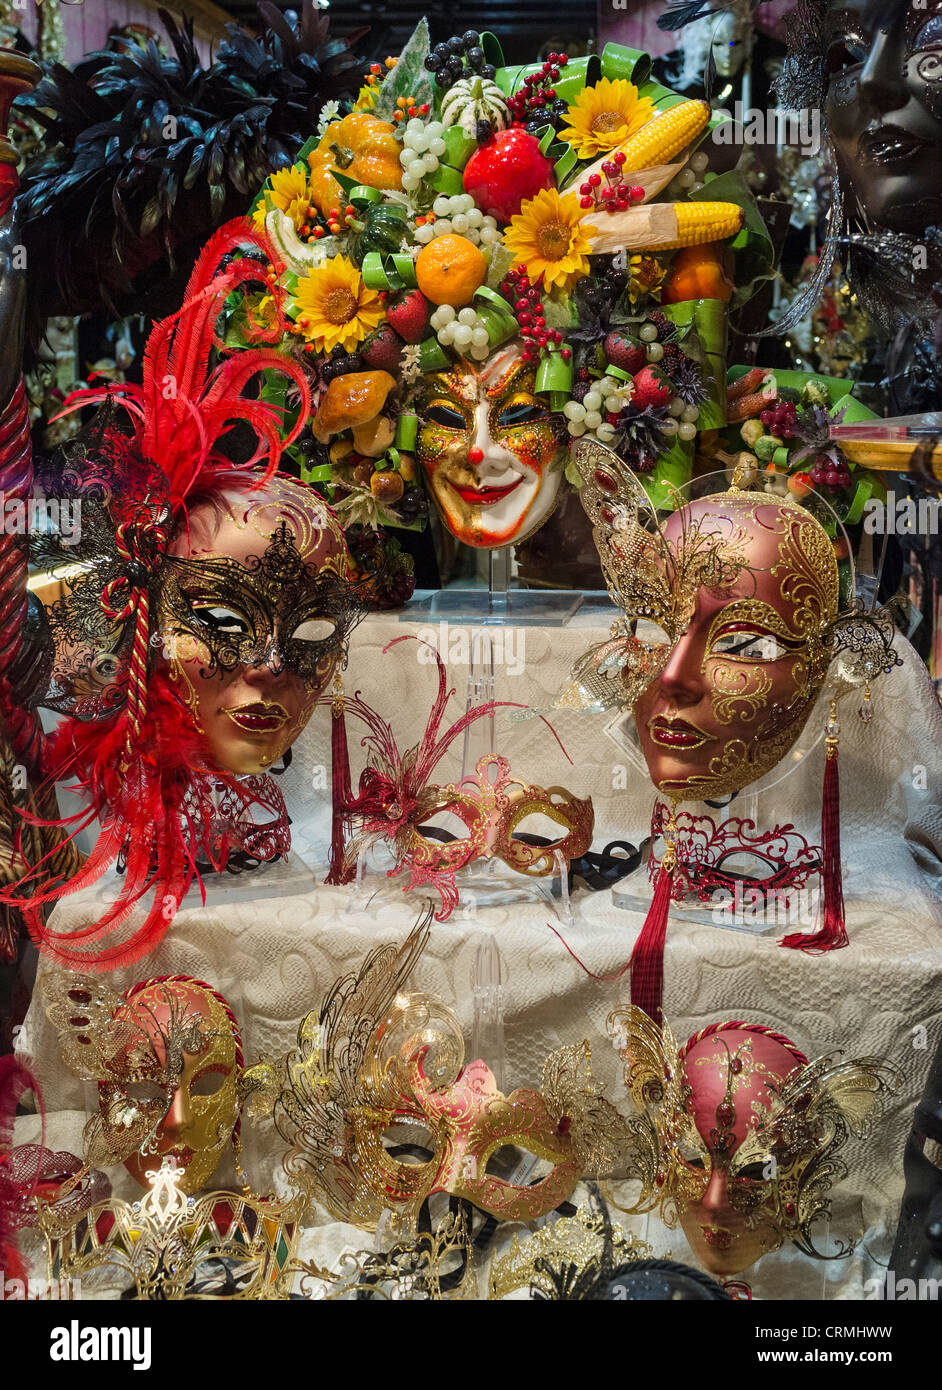 A shop window display of Venetian Carnival masks. - Stock Image